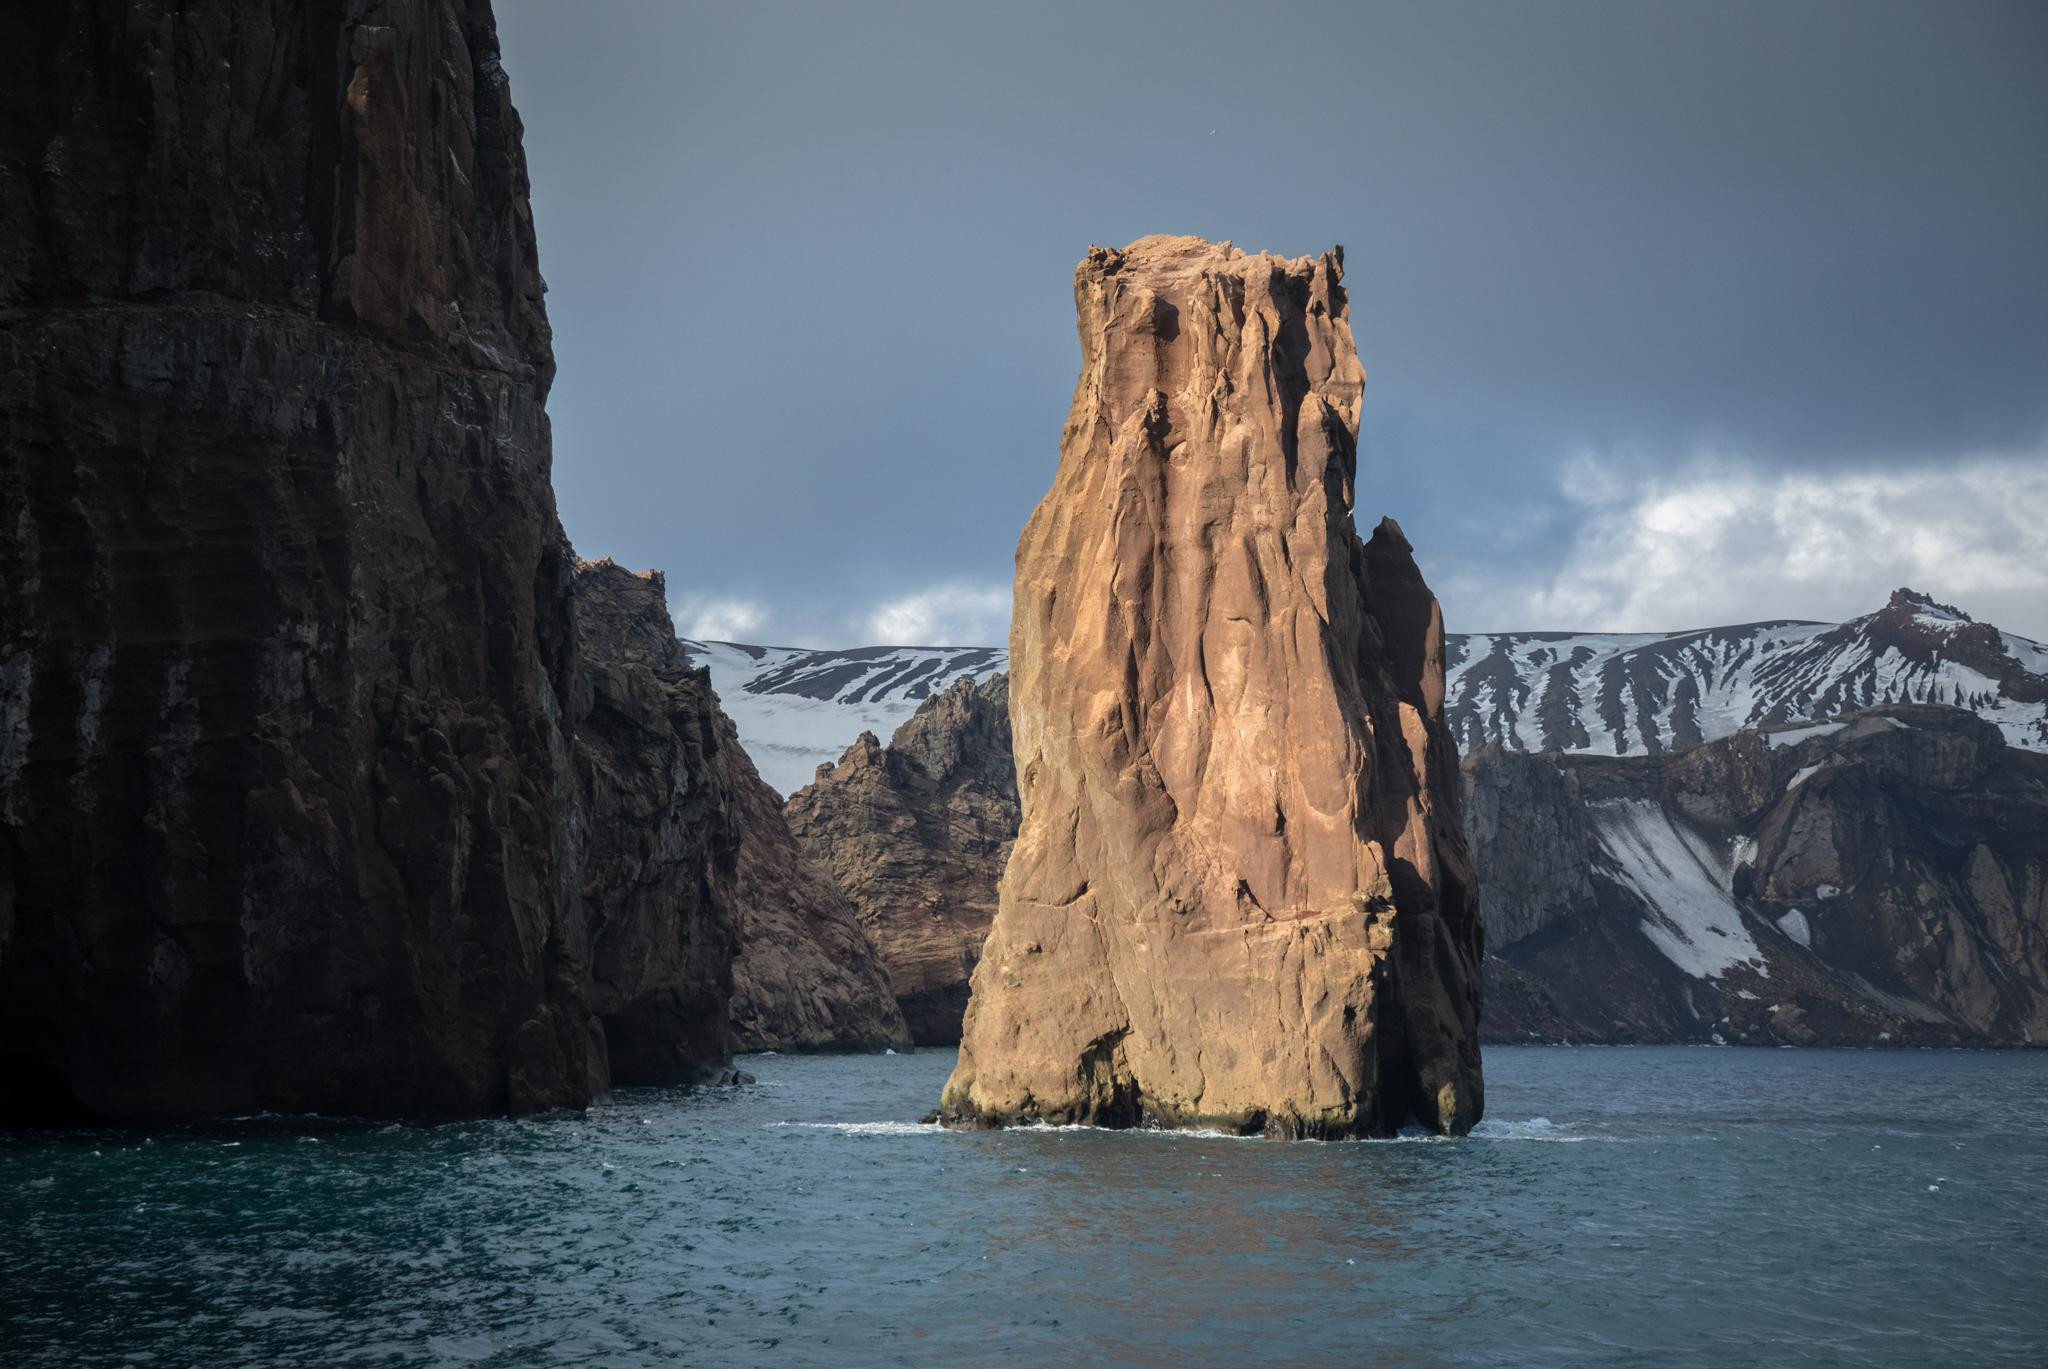 A rock formation marking the eastern side of Neptune's Bellows, the narrow passage into the Deception Island caldera. Ships entering must take care to sail close to the coastline, as a submerged rock known as Ravn Rock lies directly in the center of the passage.